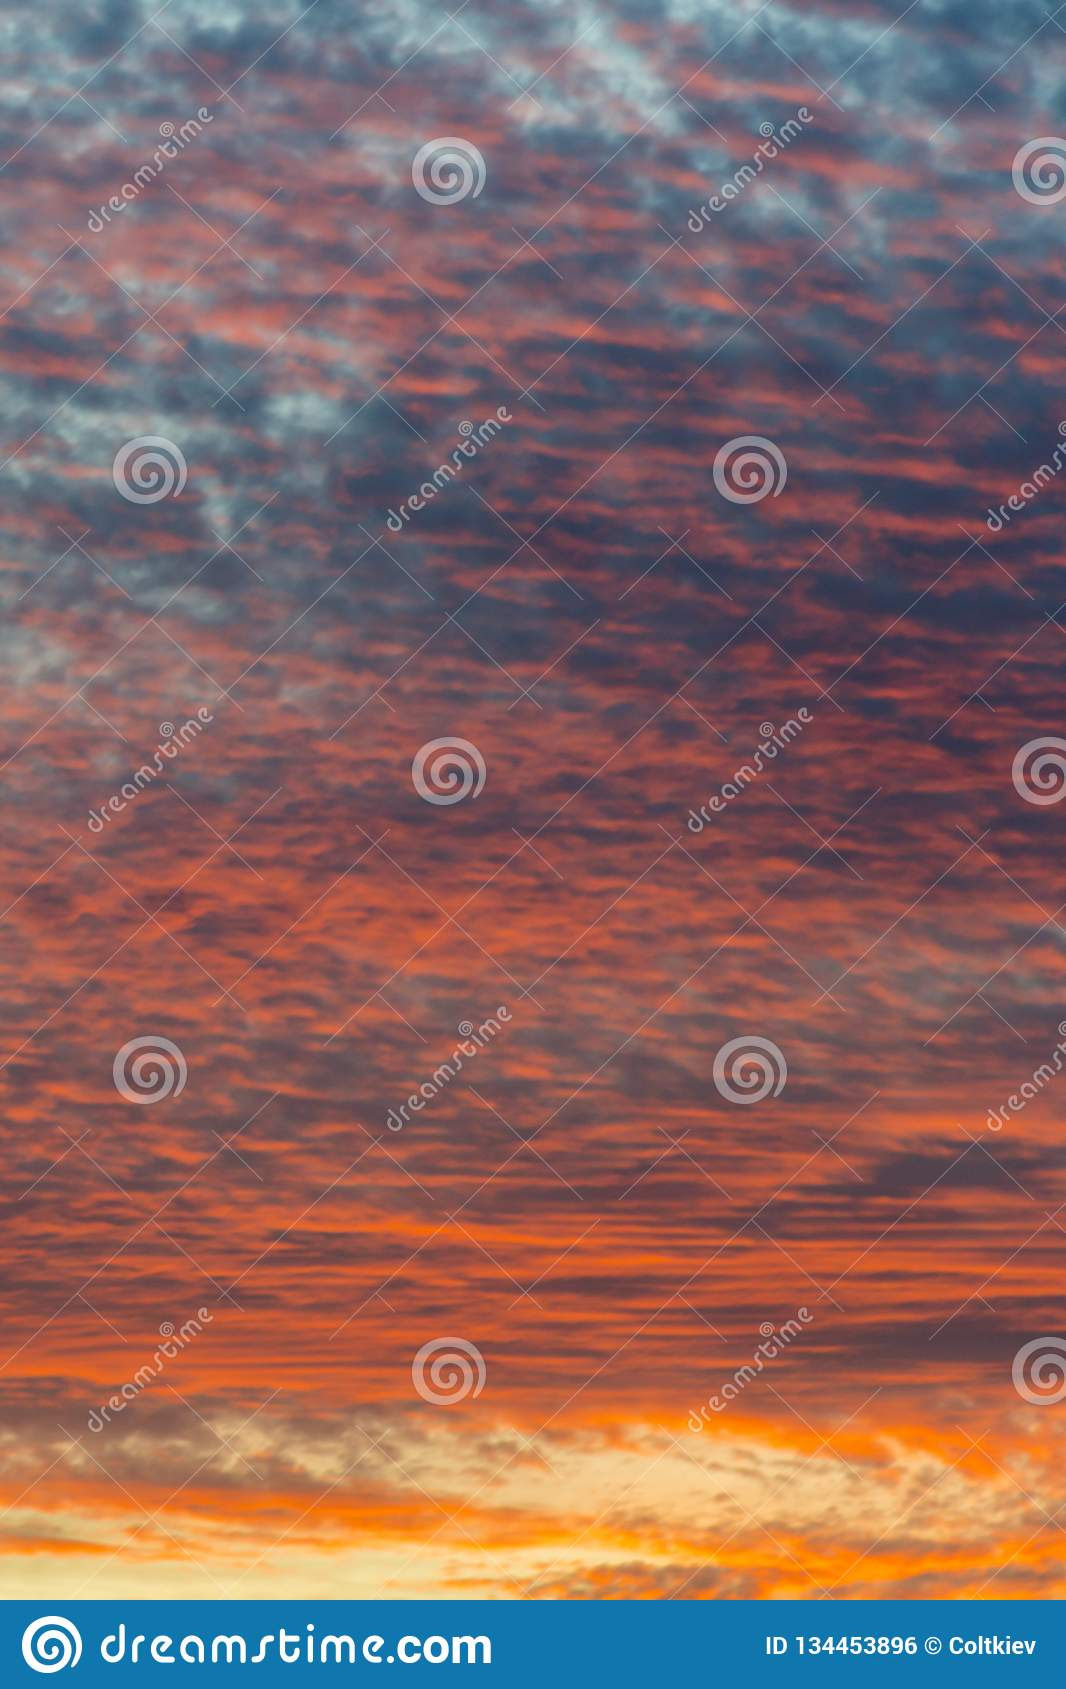 sunset with orange sky. Hot bright vibrant orange and yellow colors sunset sky. sunset with clouds. vertical photo